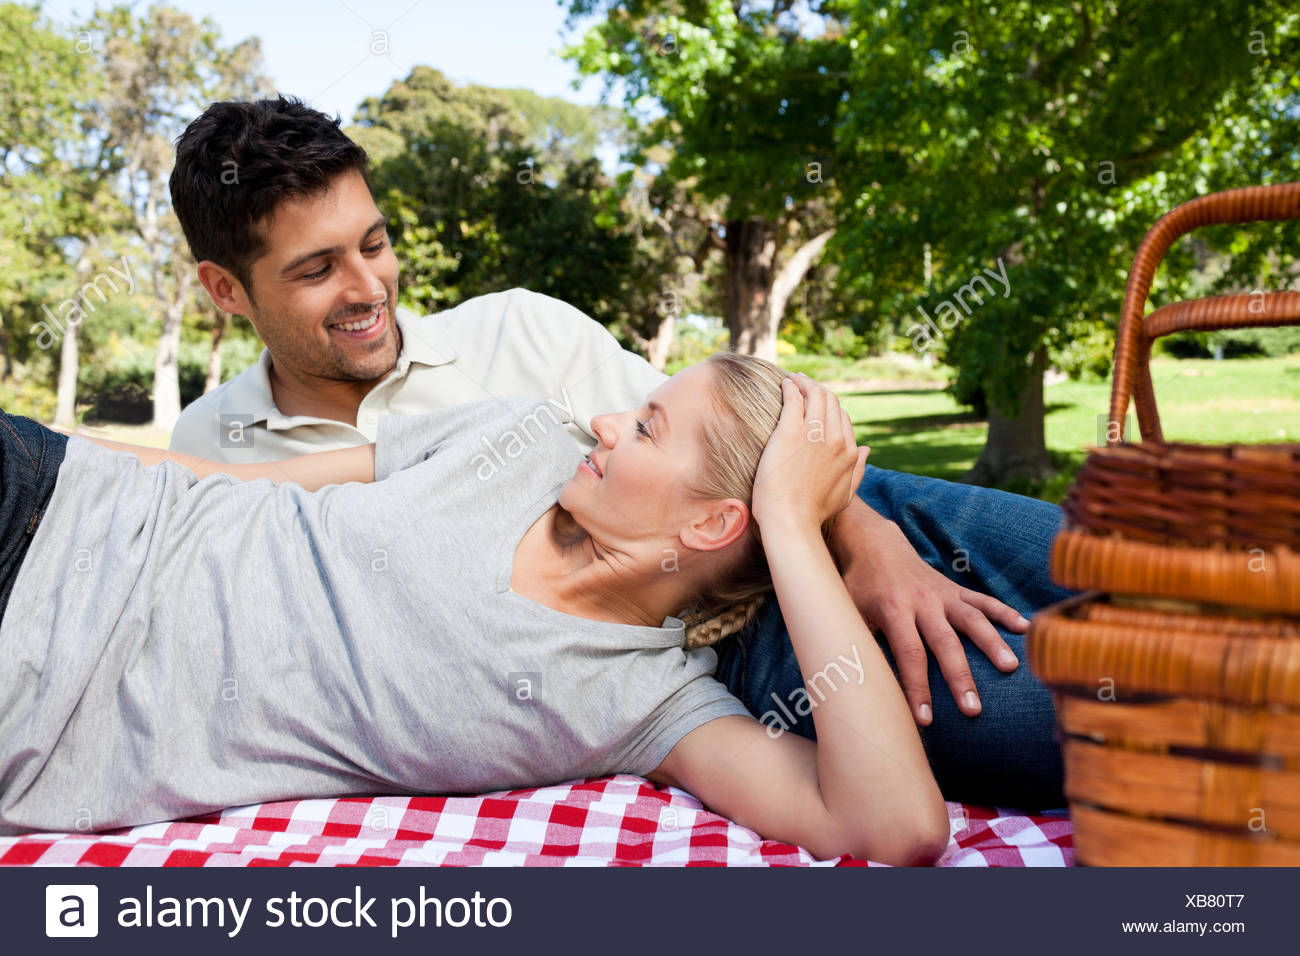 Couple picnicking in the park - Stock Image